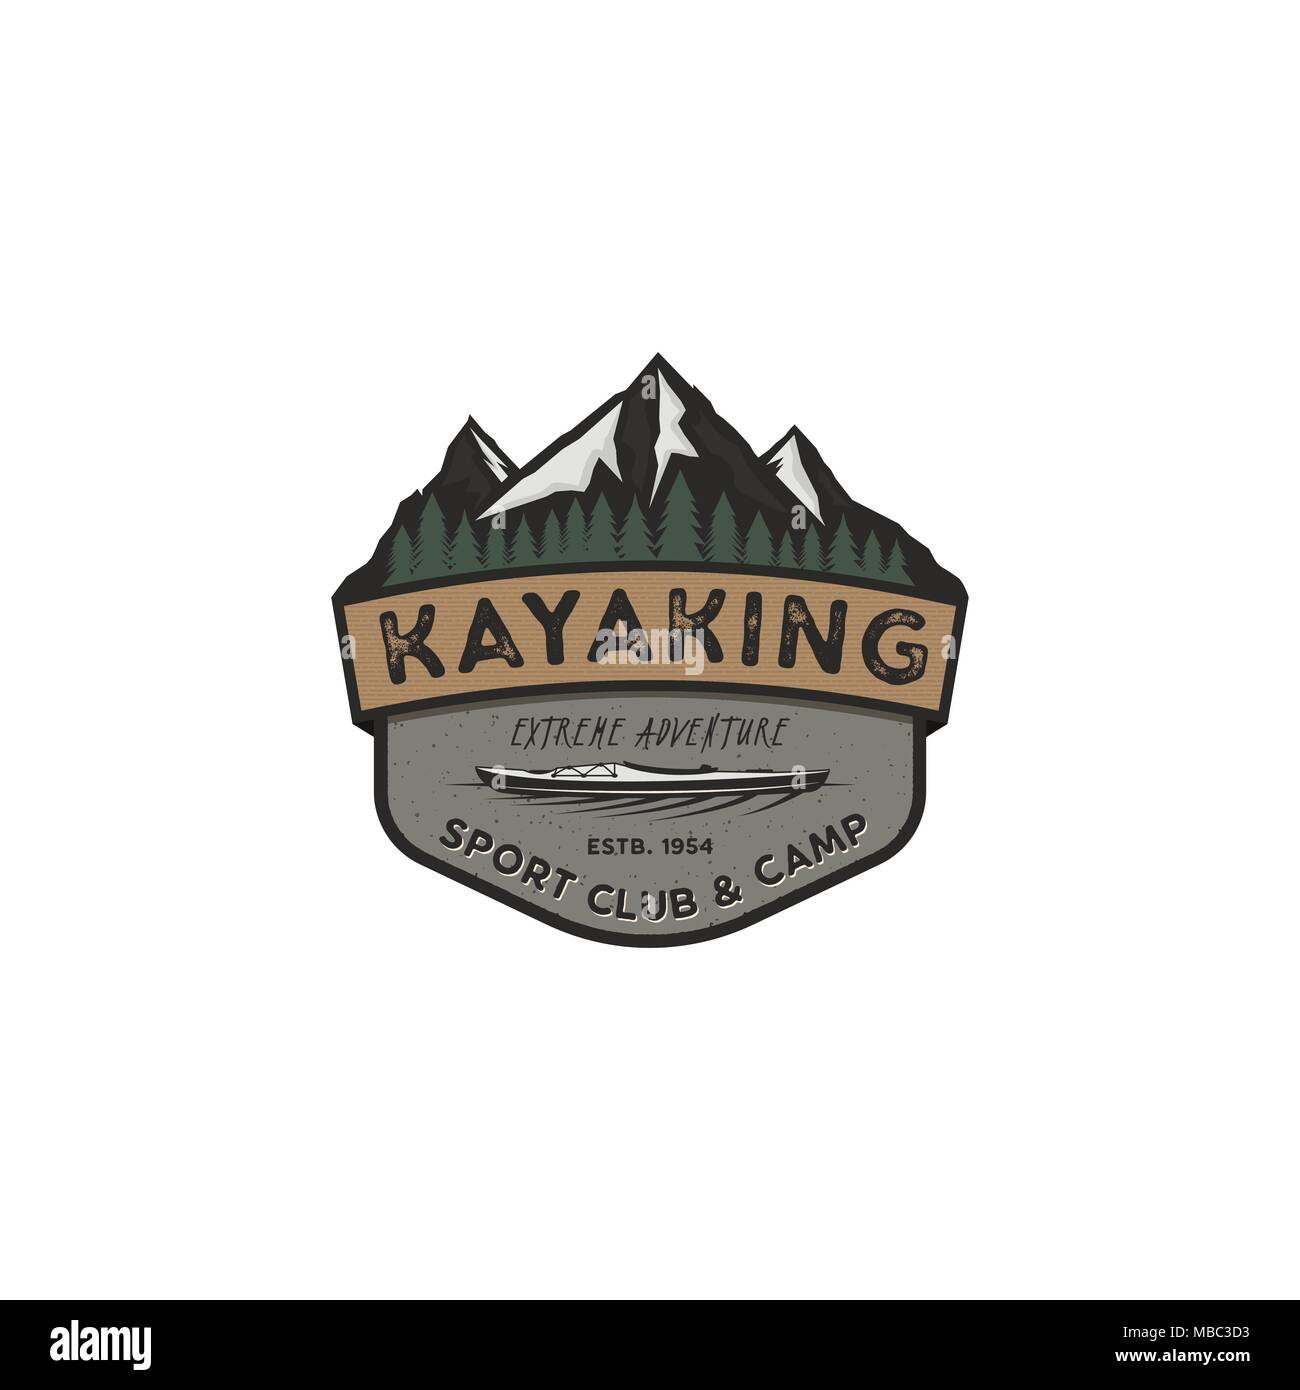 Kayaking vintage badge  Mountain explorer label  Outdoor